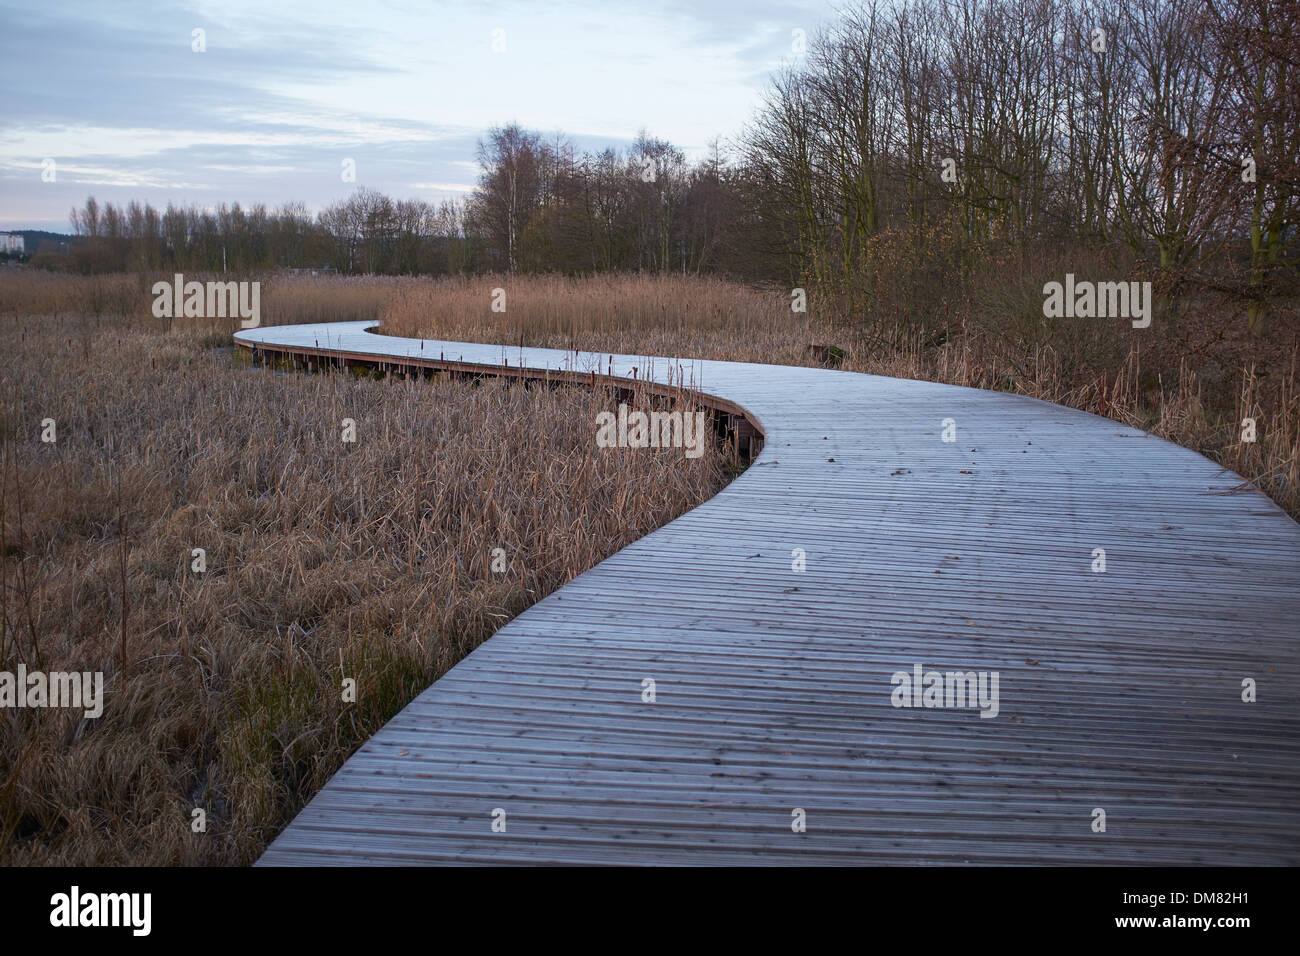 Wooden raised walkway through wetlands in The Helix park on the outskirts of Falkirk - Stock Image